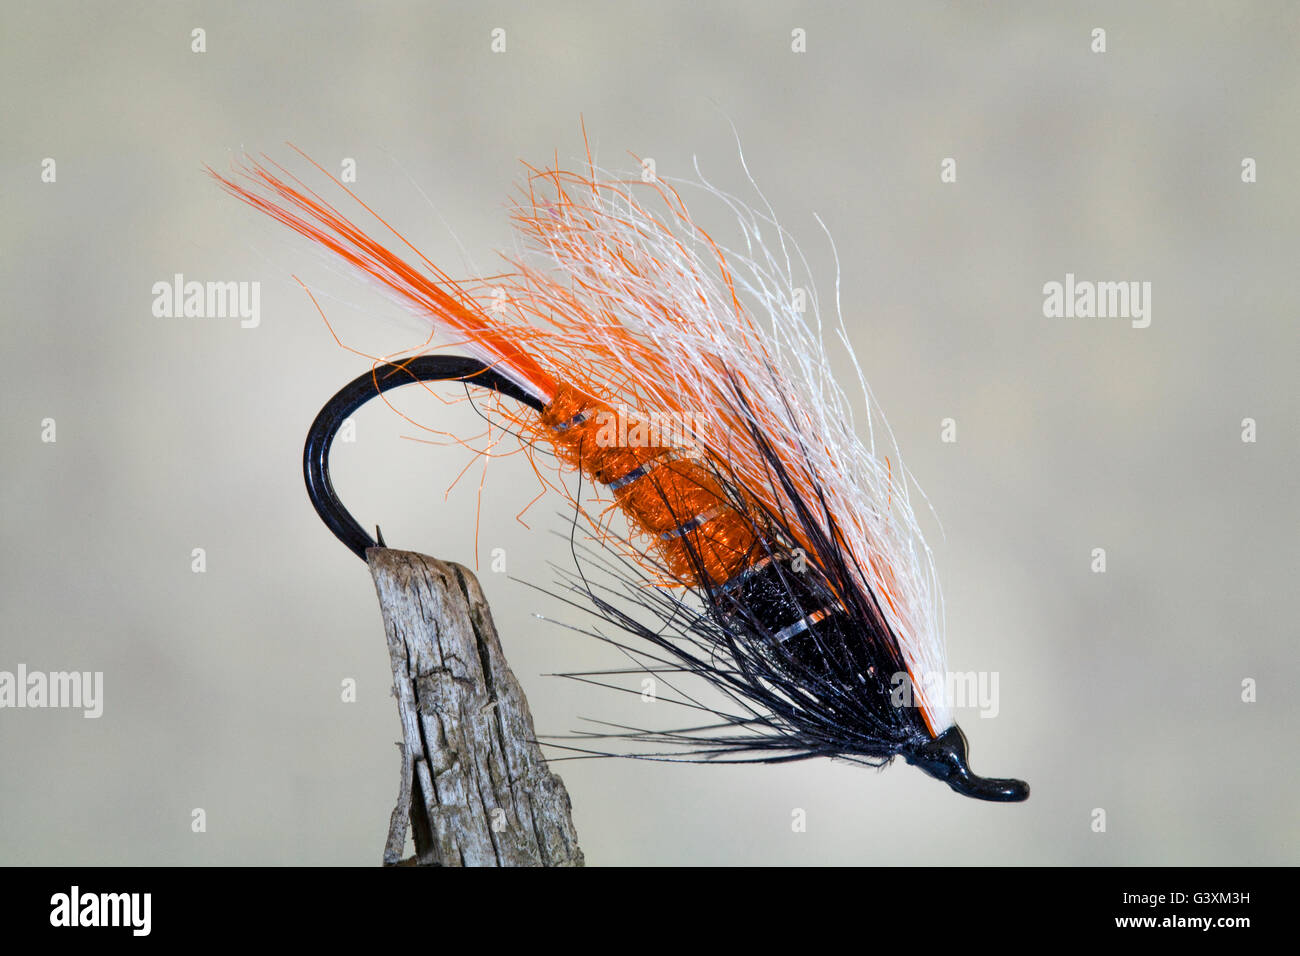 Hand-tied artificial steelhead fishing flies from the Pacific Northwest - Stock Image